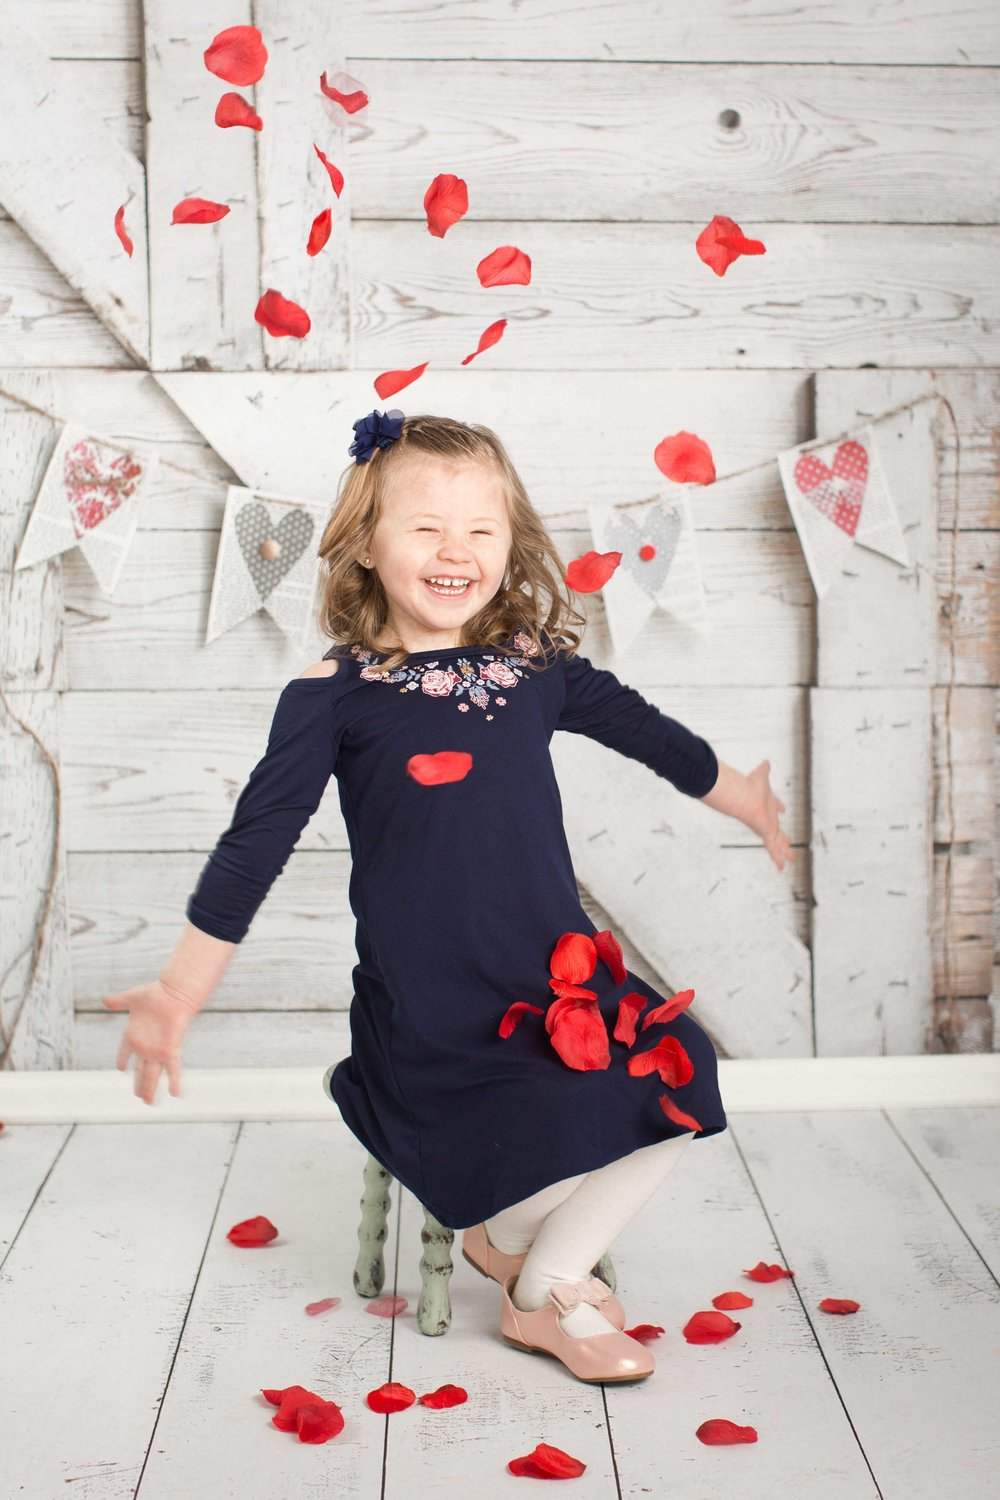 Children's Portraits | Mini session | Valentines Day-3.jpg